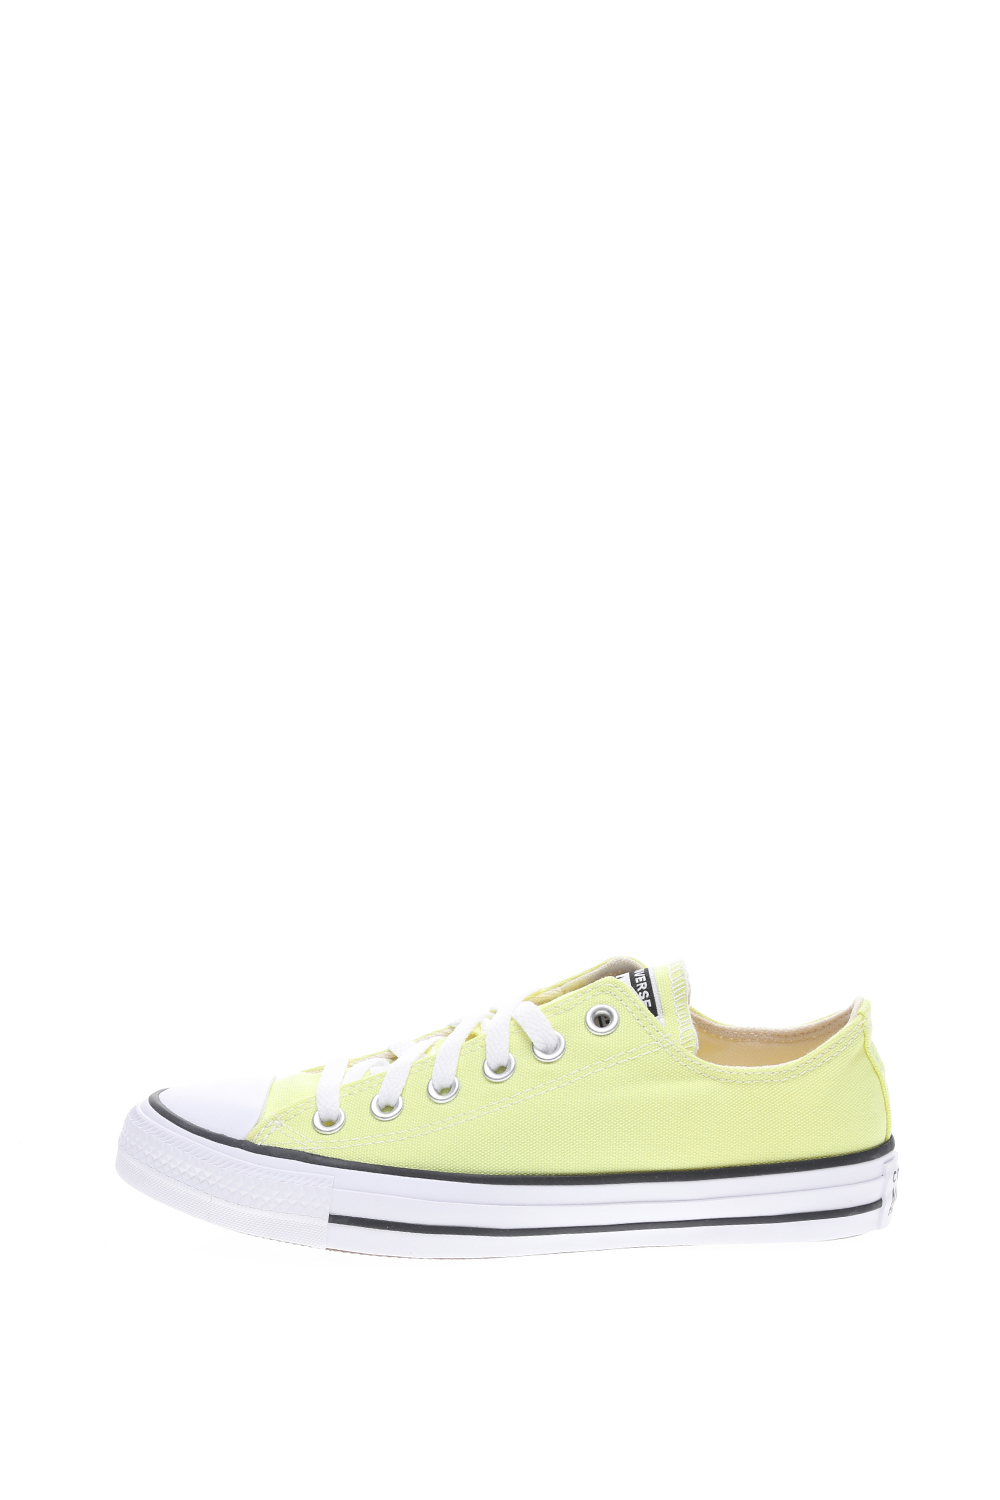 CONVERSE – Unisex sneakers CONVERSE CHUCK TAYLOR ALL STAR PET CANV κίτρινα